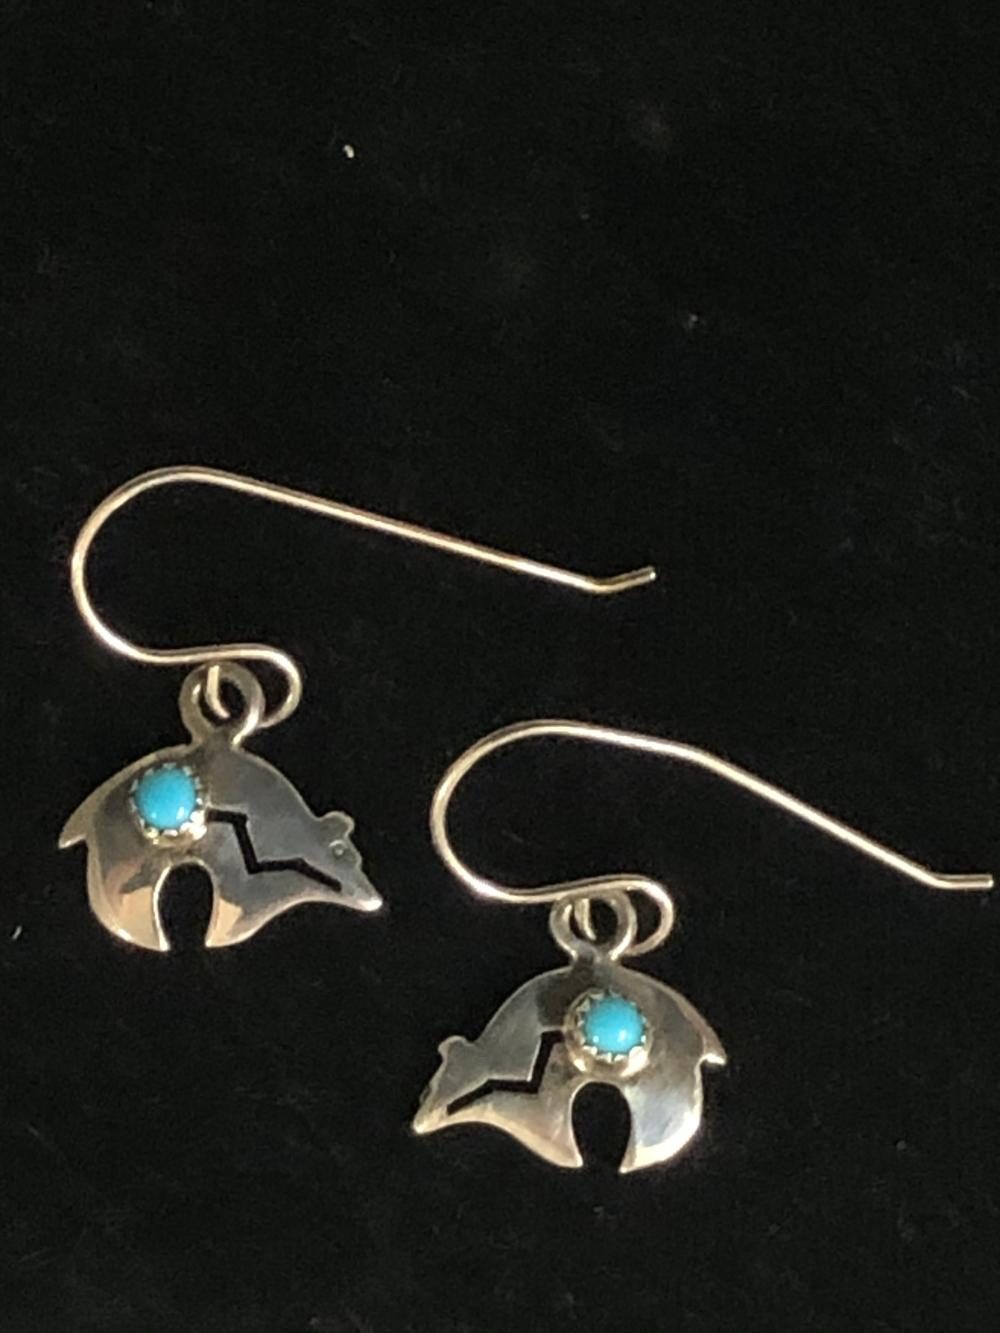 Petite bear shaped sterling silver earrings with turquoise stone